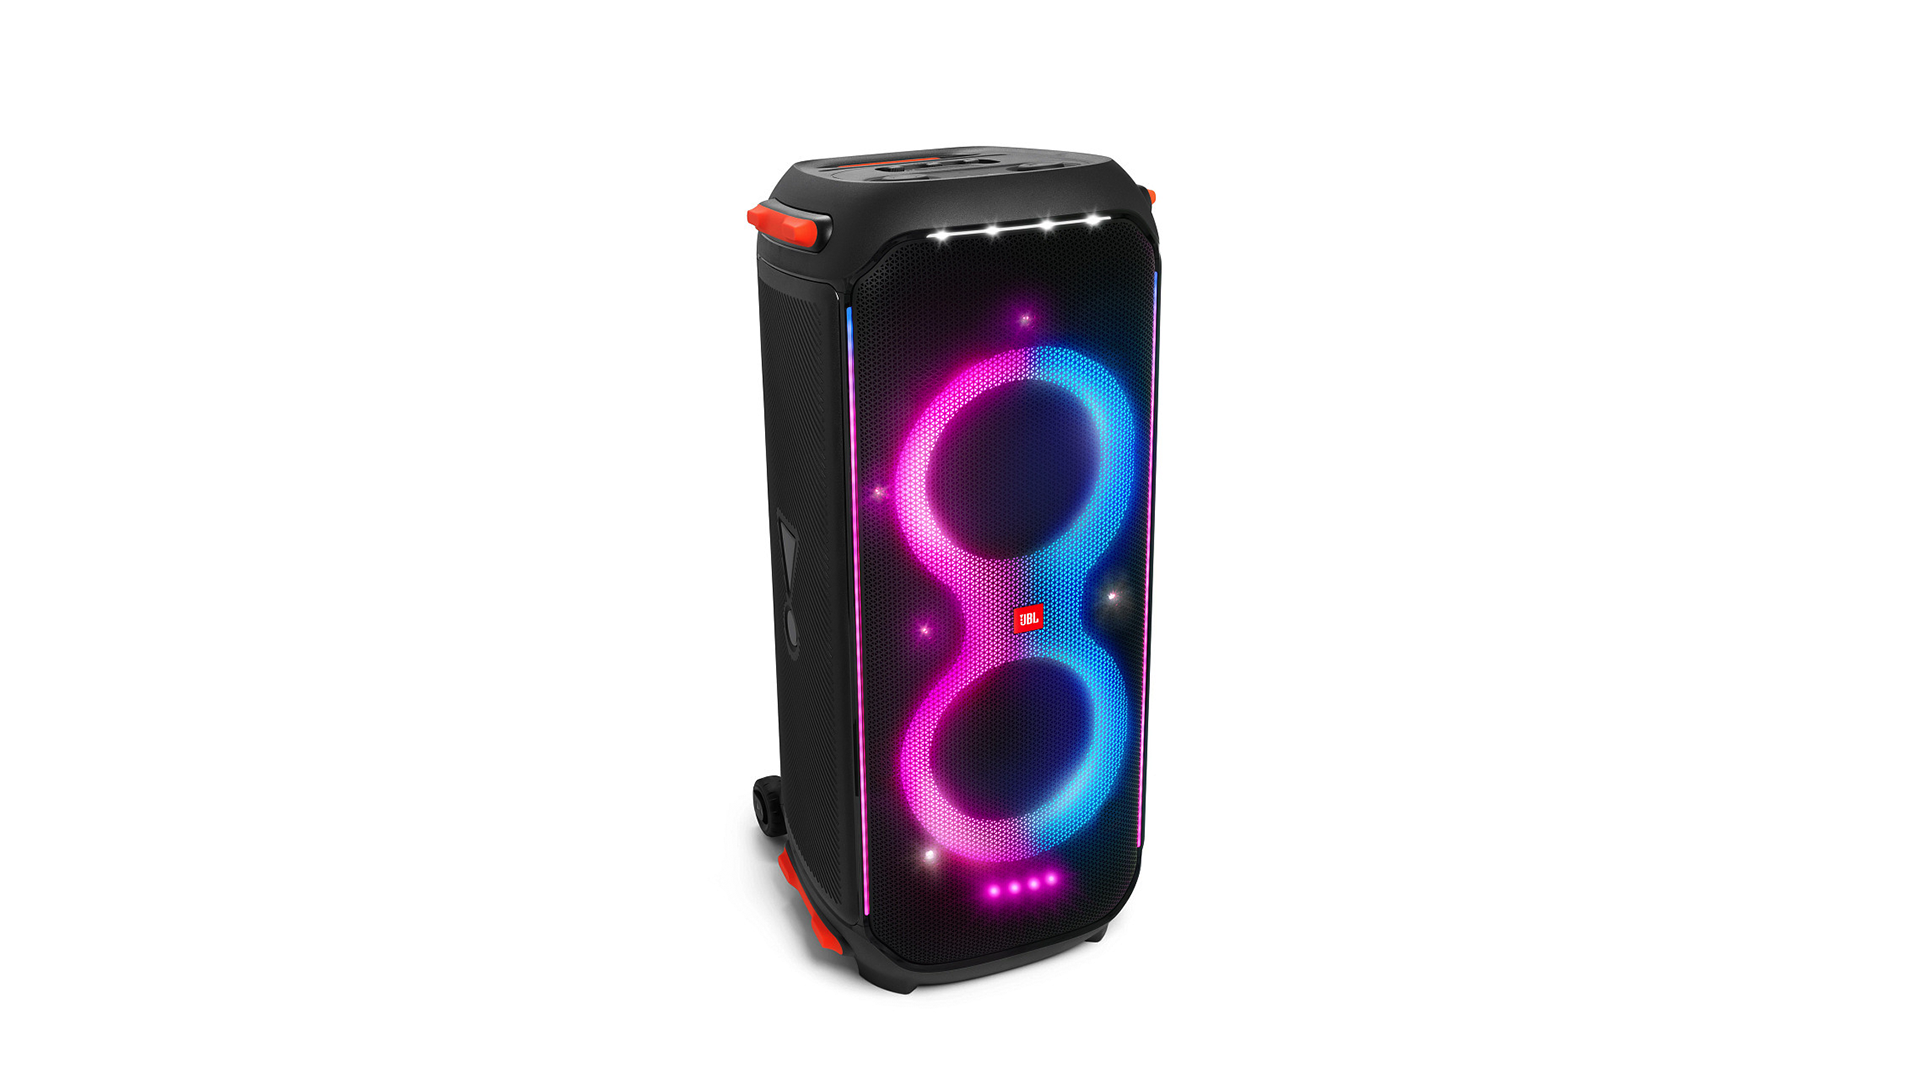 The JBL PartyBox 710.